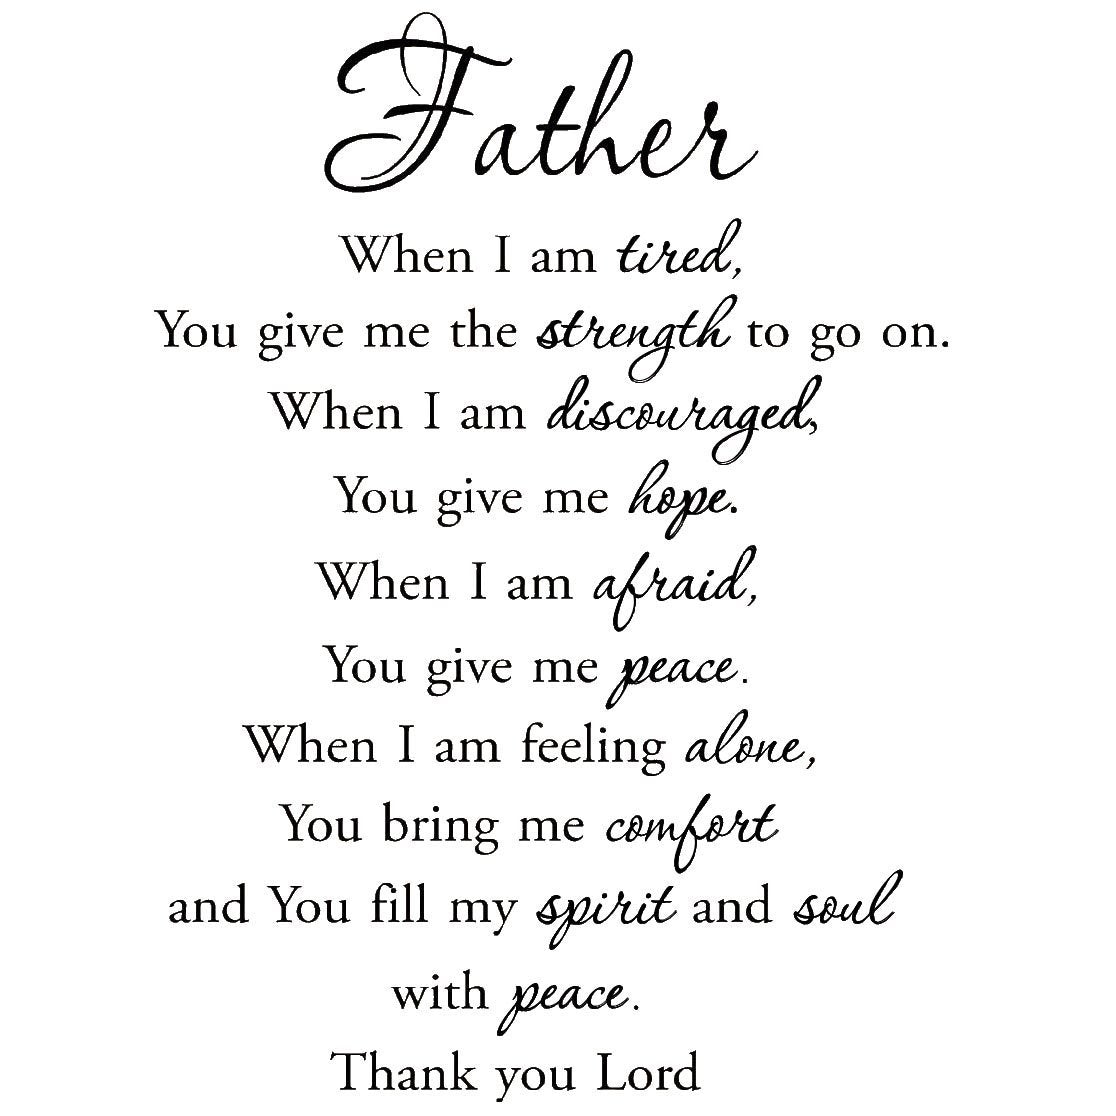 VWAQ Father When I am Tired Faith Quotes Wall Decals - VWAQ Vinyl Wall Art Quotes and Prints